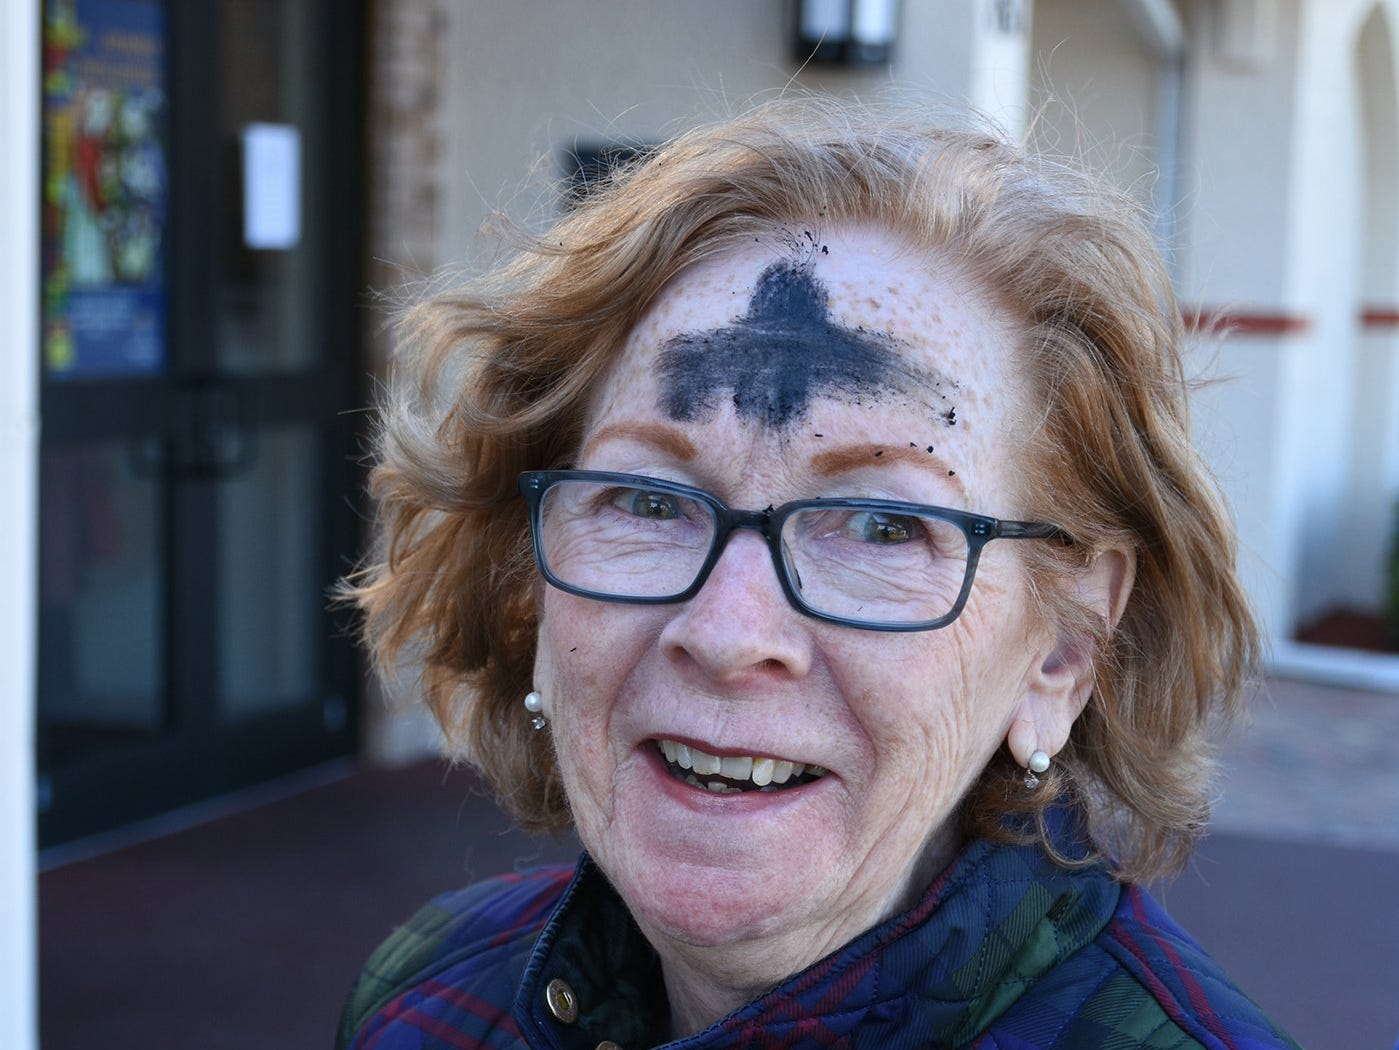 Janet Heckin leaves San Marco Catholic Church with her forehead decorated with ashes. Catholics on Marco Island and around the world, along with many other Christians, celebrated Ash Wednesday by attending mass and having a cross drawn on their foreheads in ashes.